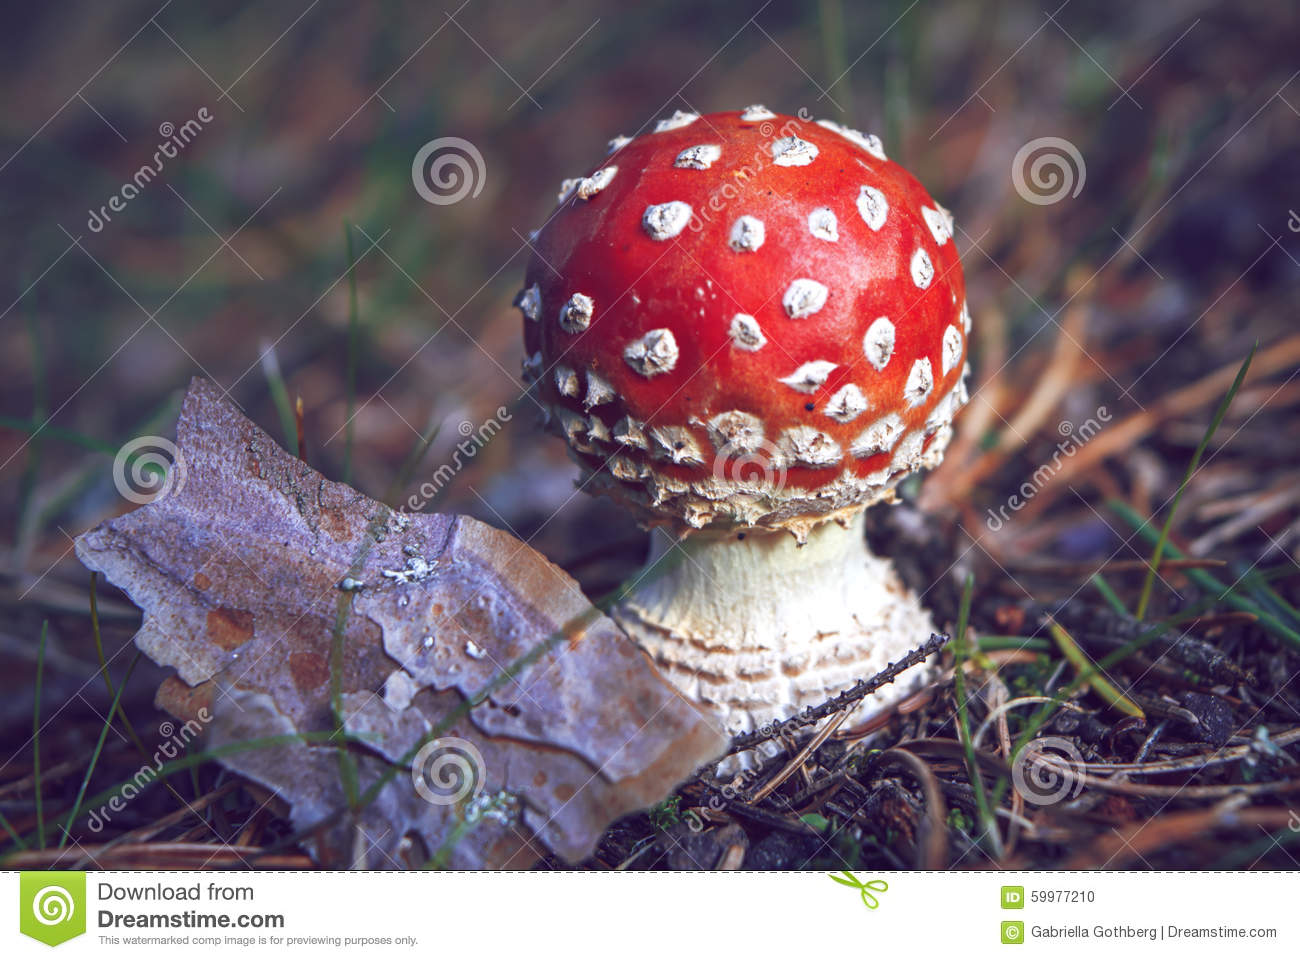 Close-up of a small, round red and white fly agaric, Amanita muscaria, in autumn.